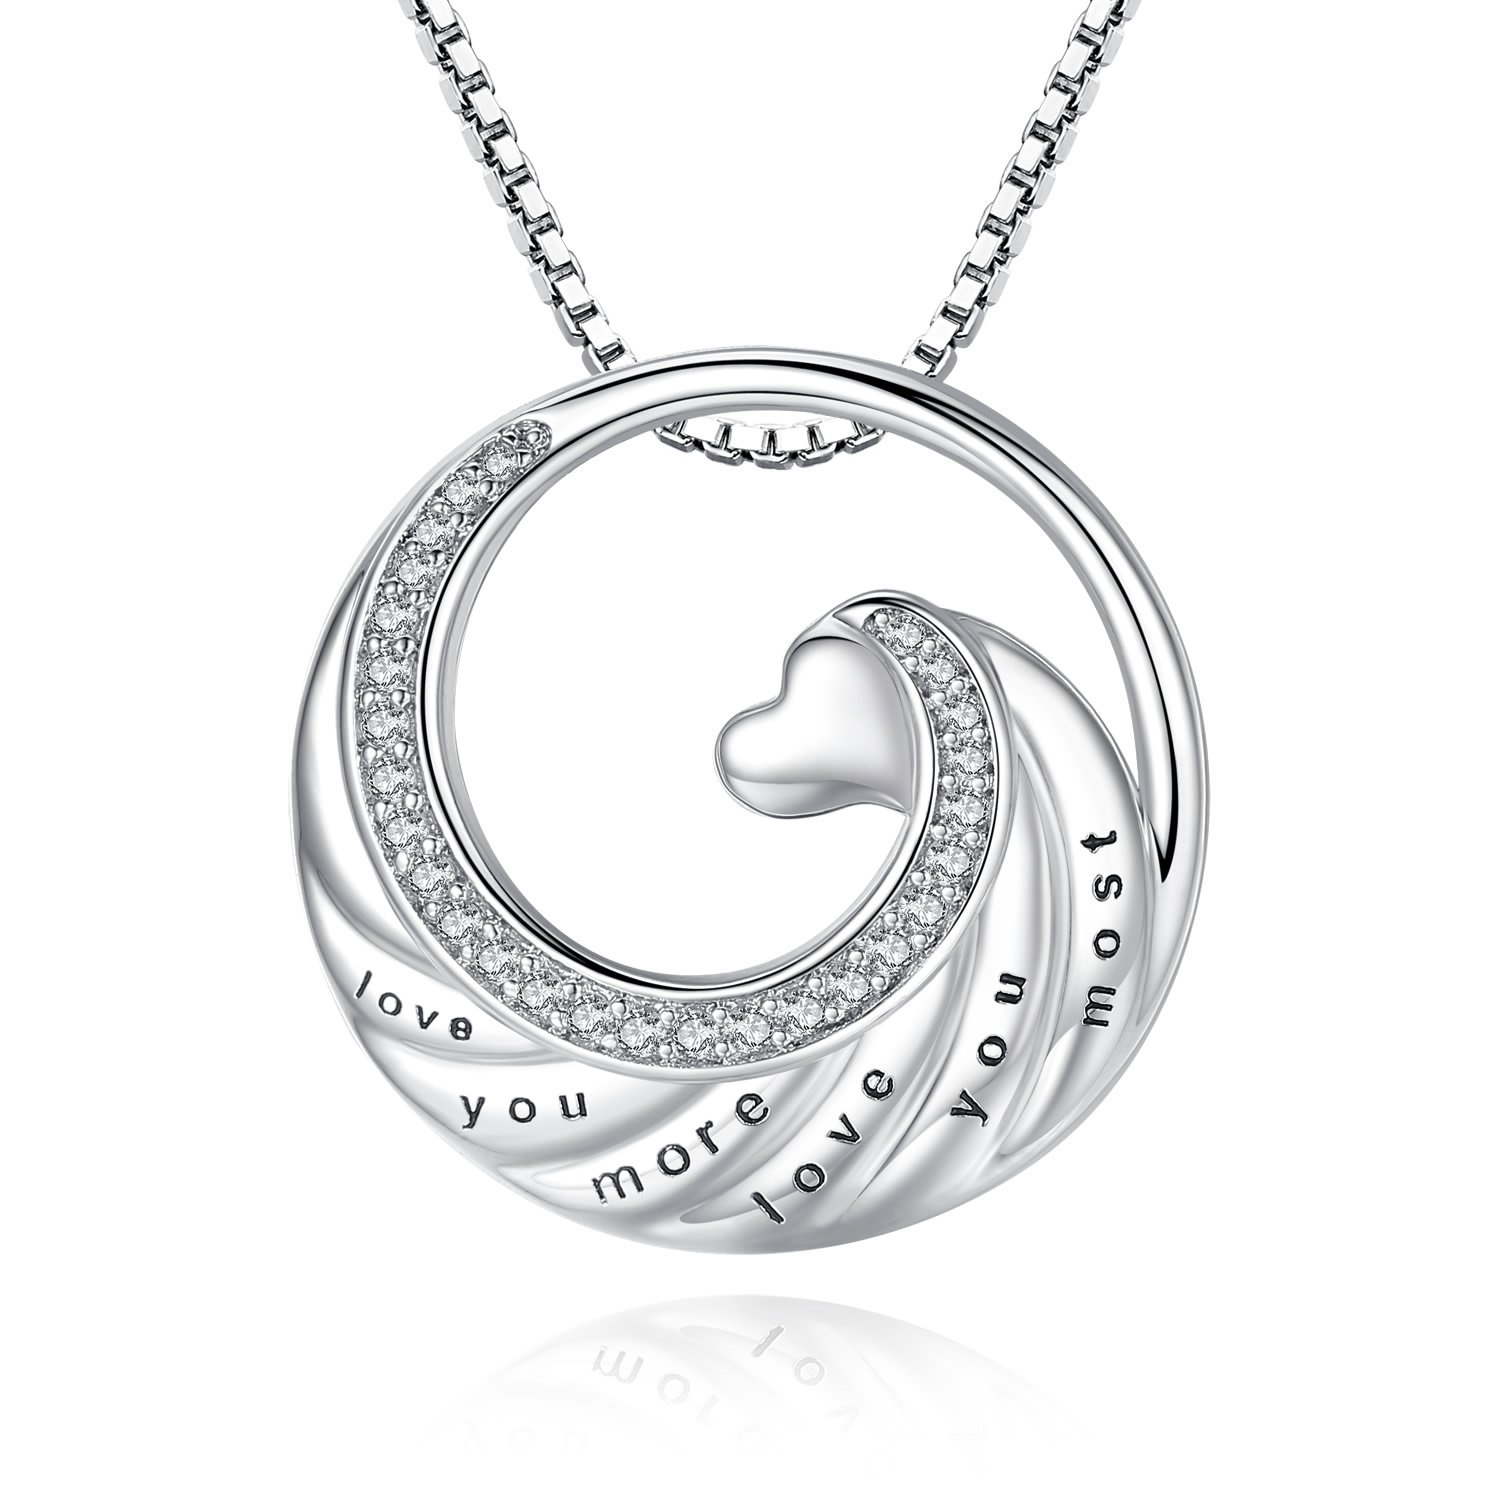 Usview 'I Love You More I Love You Most' Heart Pendant Necklace, Gifts For Her, Girlfriend, Wife, Lover, 18'' (Love-you-more-most)